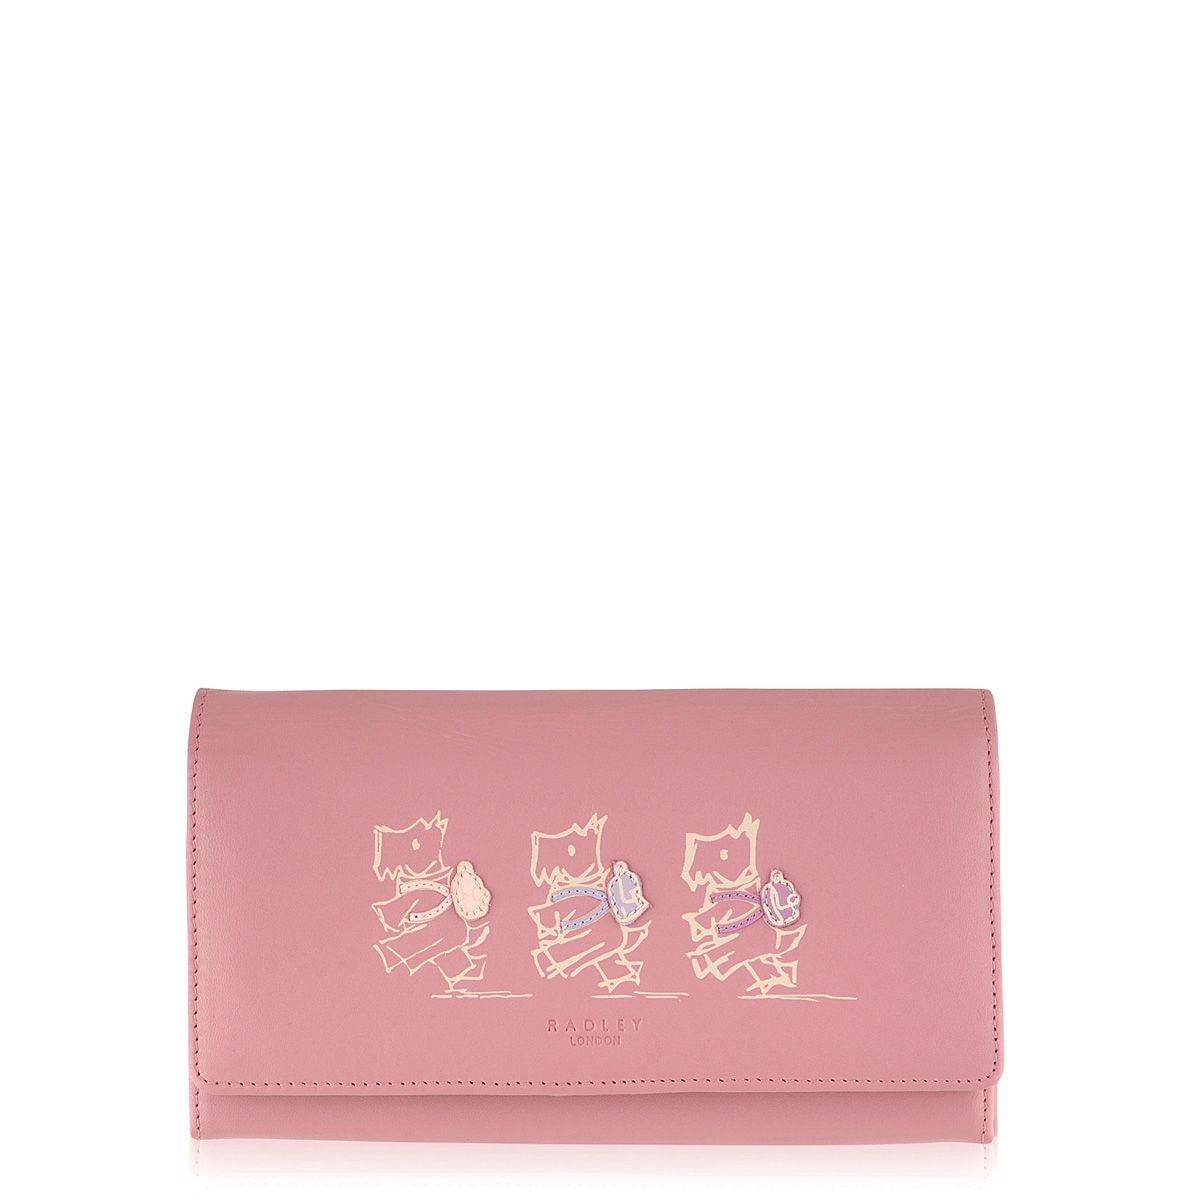 Walk the walk pink large flapover purse